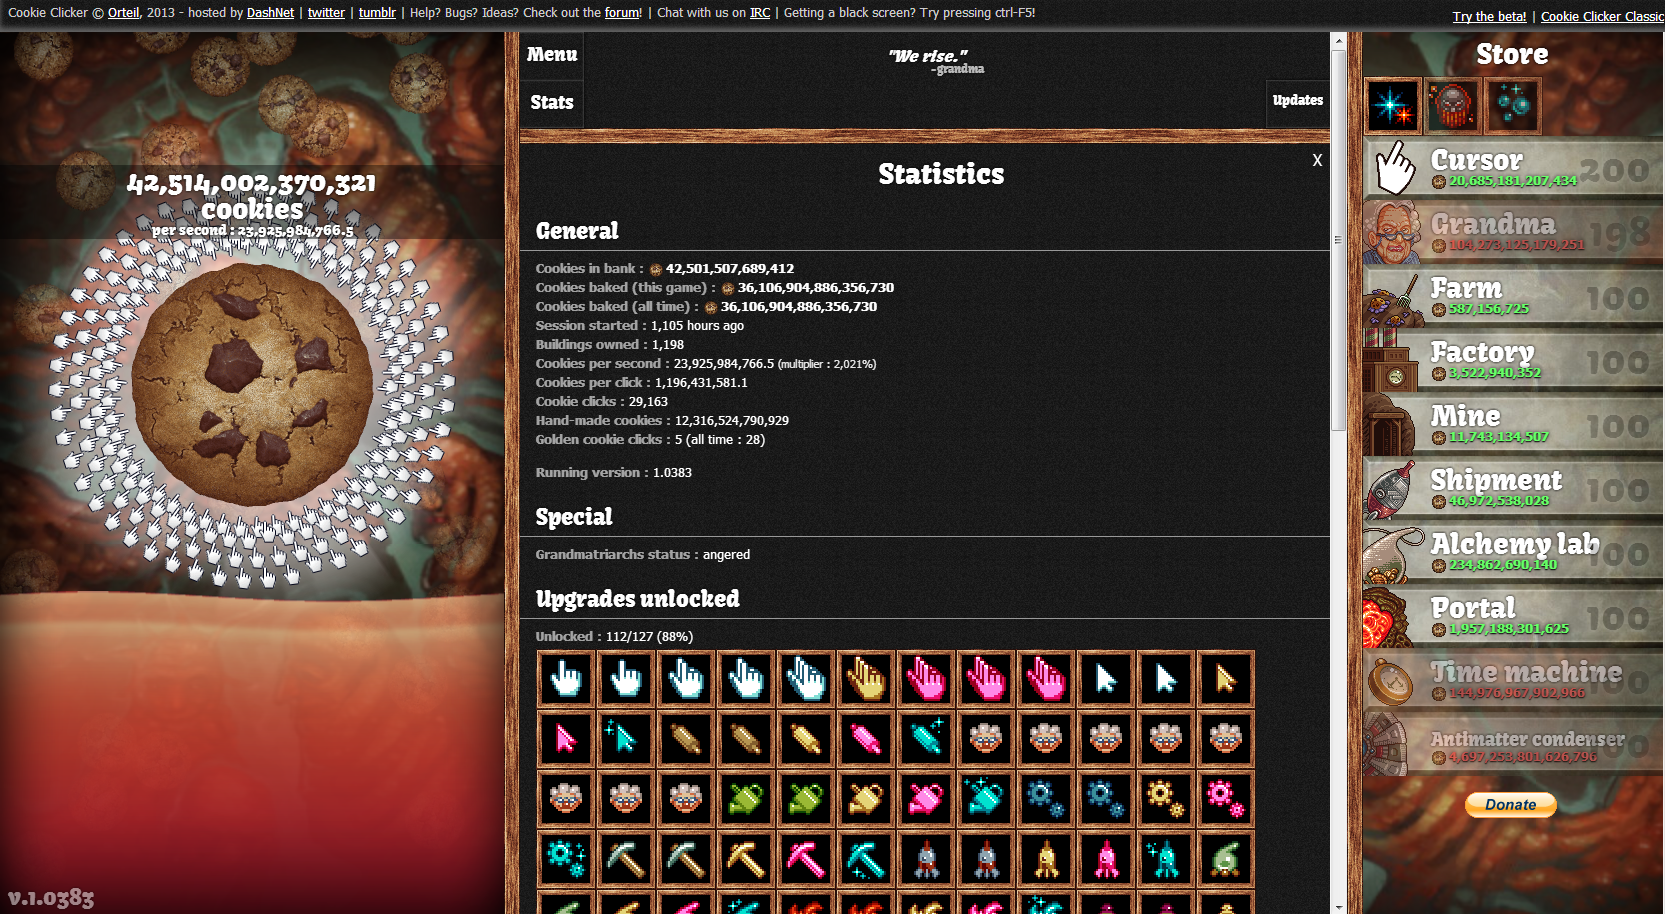 Cookie Clicker game window